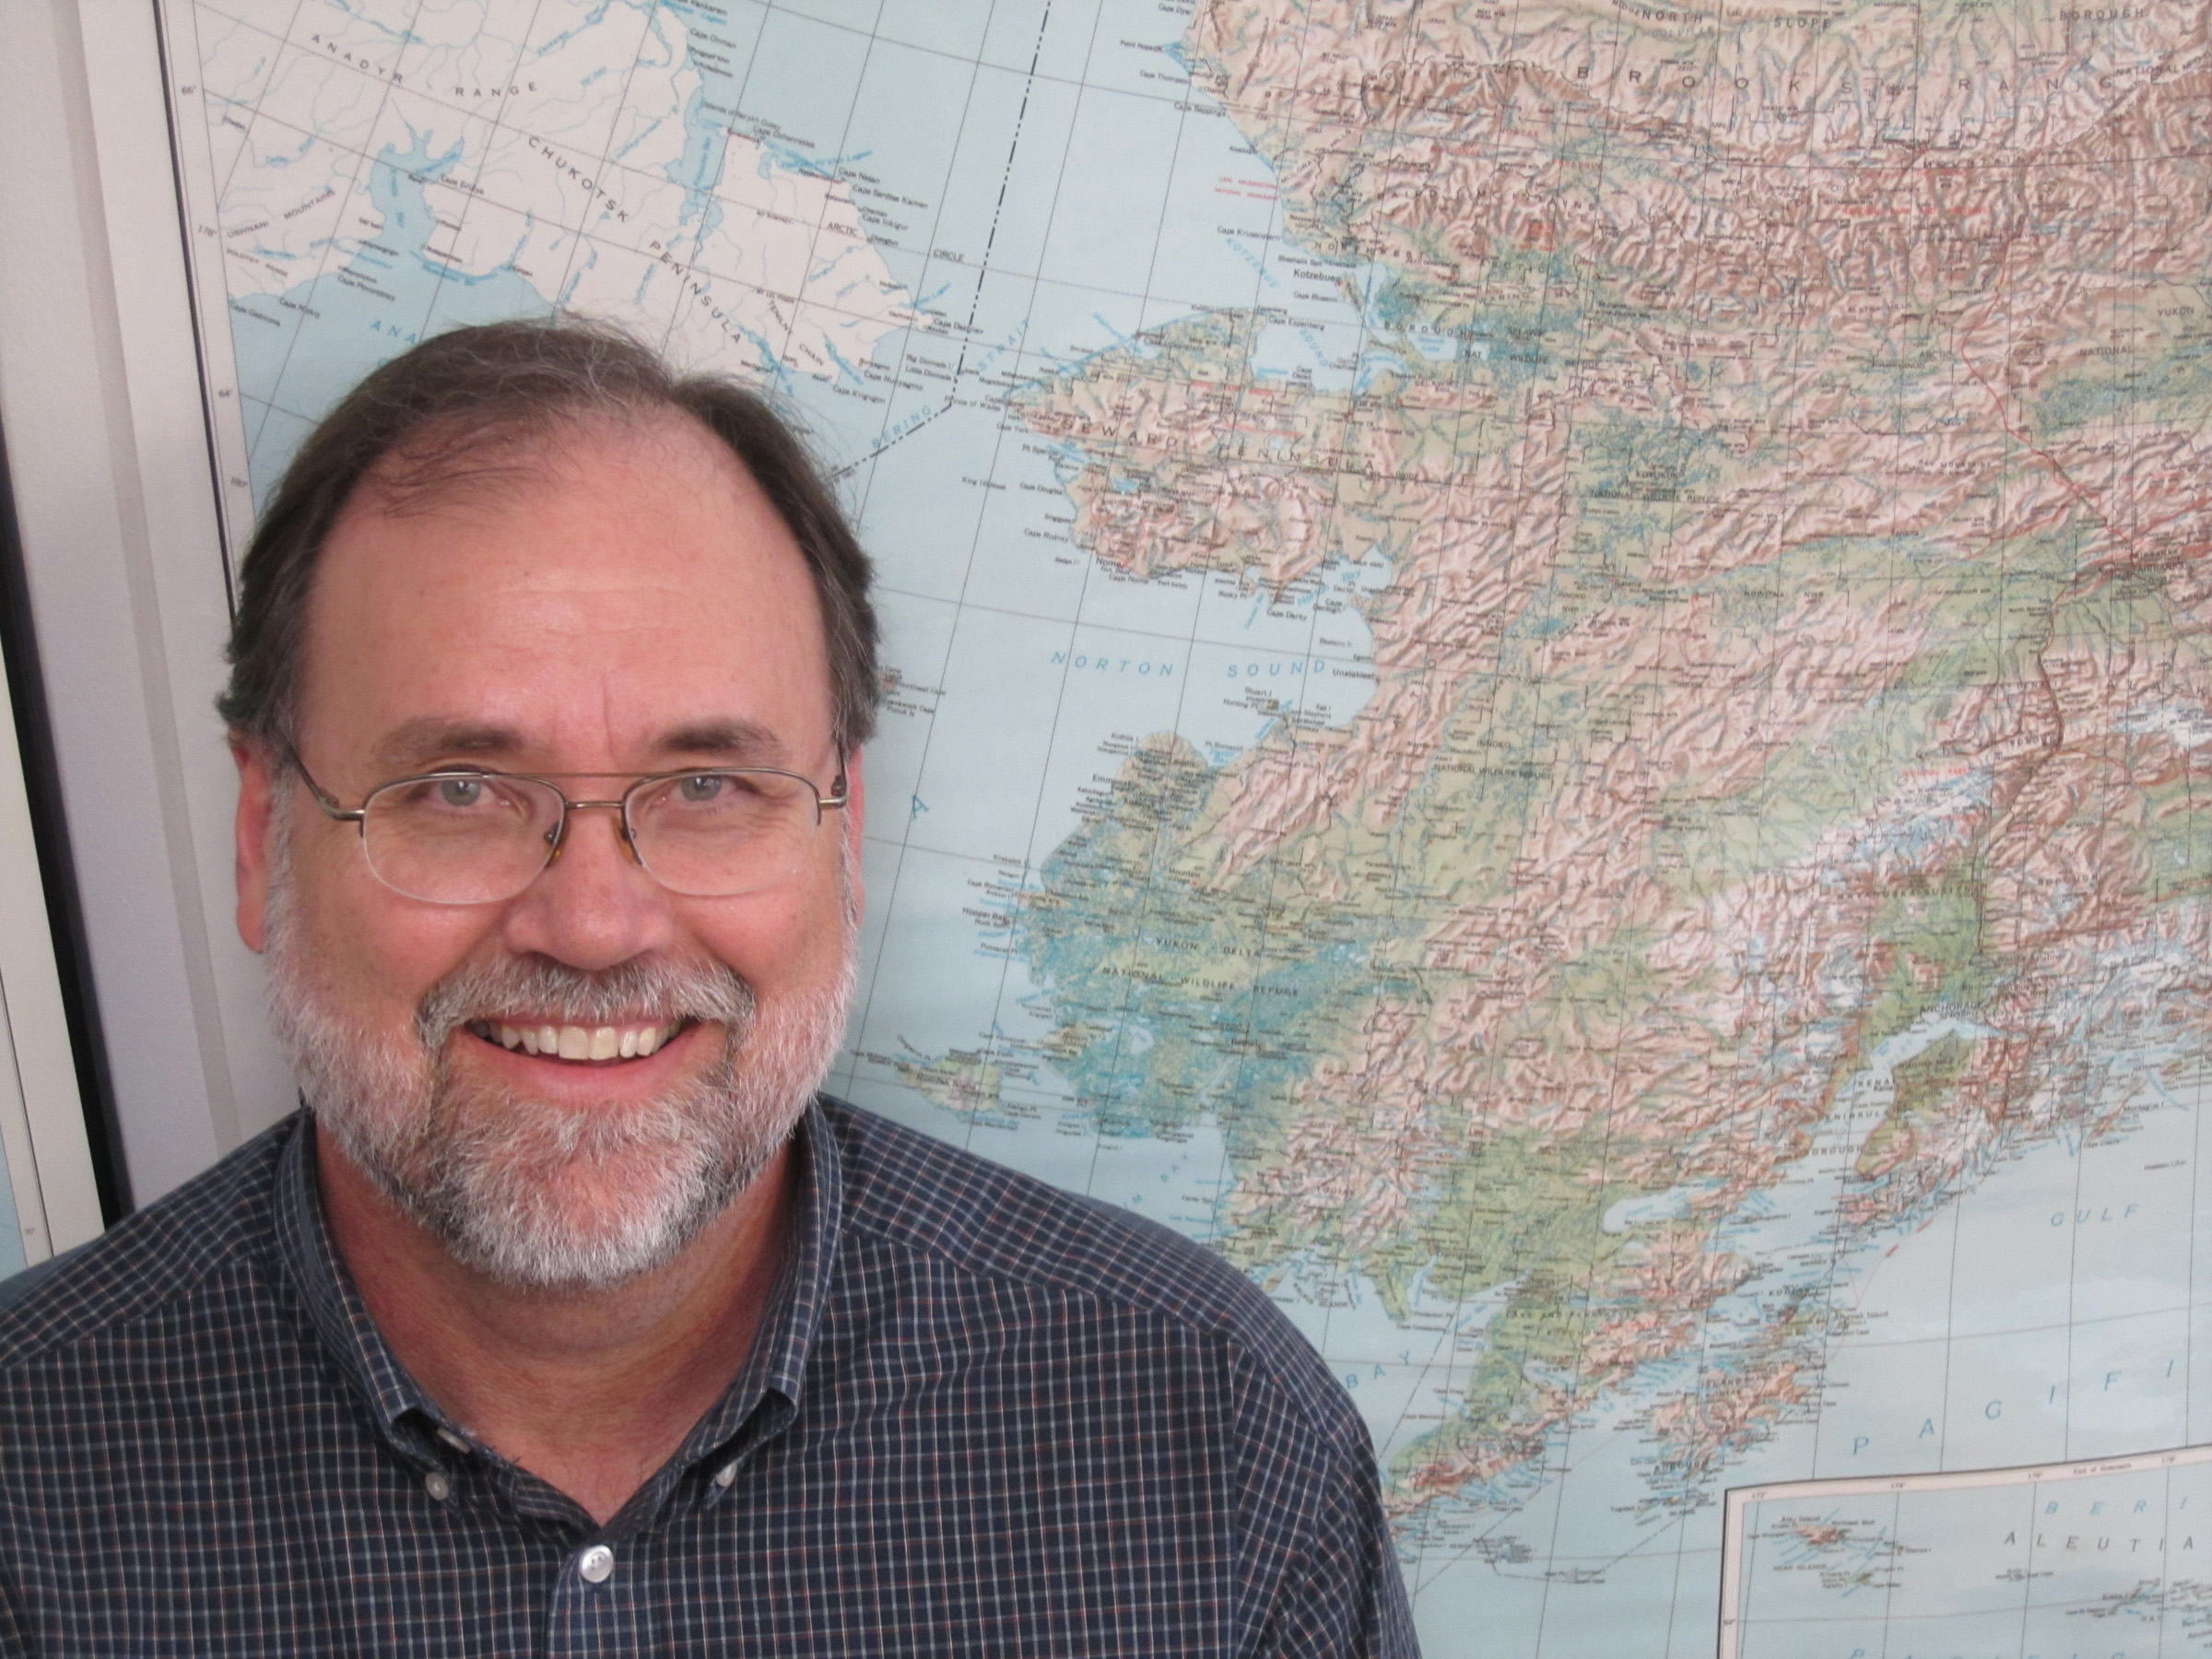 """University of Utah anthropologist Dennis O'Rourke co-authored a Perspective column in the journal Science arguing that genetic, ancient environmental and archaeological evidence can be reconciled in support of the idea that the ancestors of Native Americans spent some 10,000 years living in brushy refuges on the Bering Land Bridge en route from Siberia to the Americas. Contrary to common misperception, the """"bridge"""" really was a landmass 1,000 miles wide from north to south and covered most of the area now shown as ocean on the map around, behind and above O'Rourke's head."""